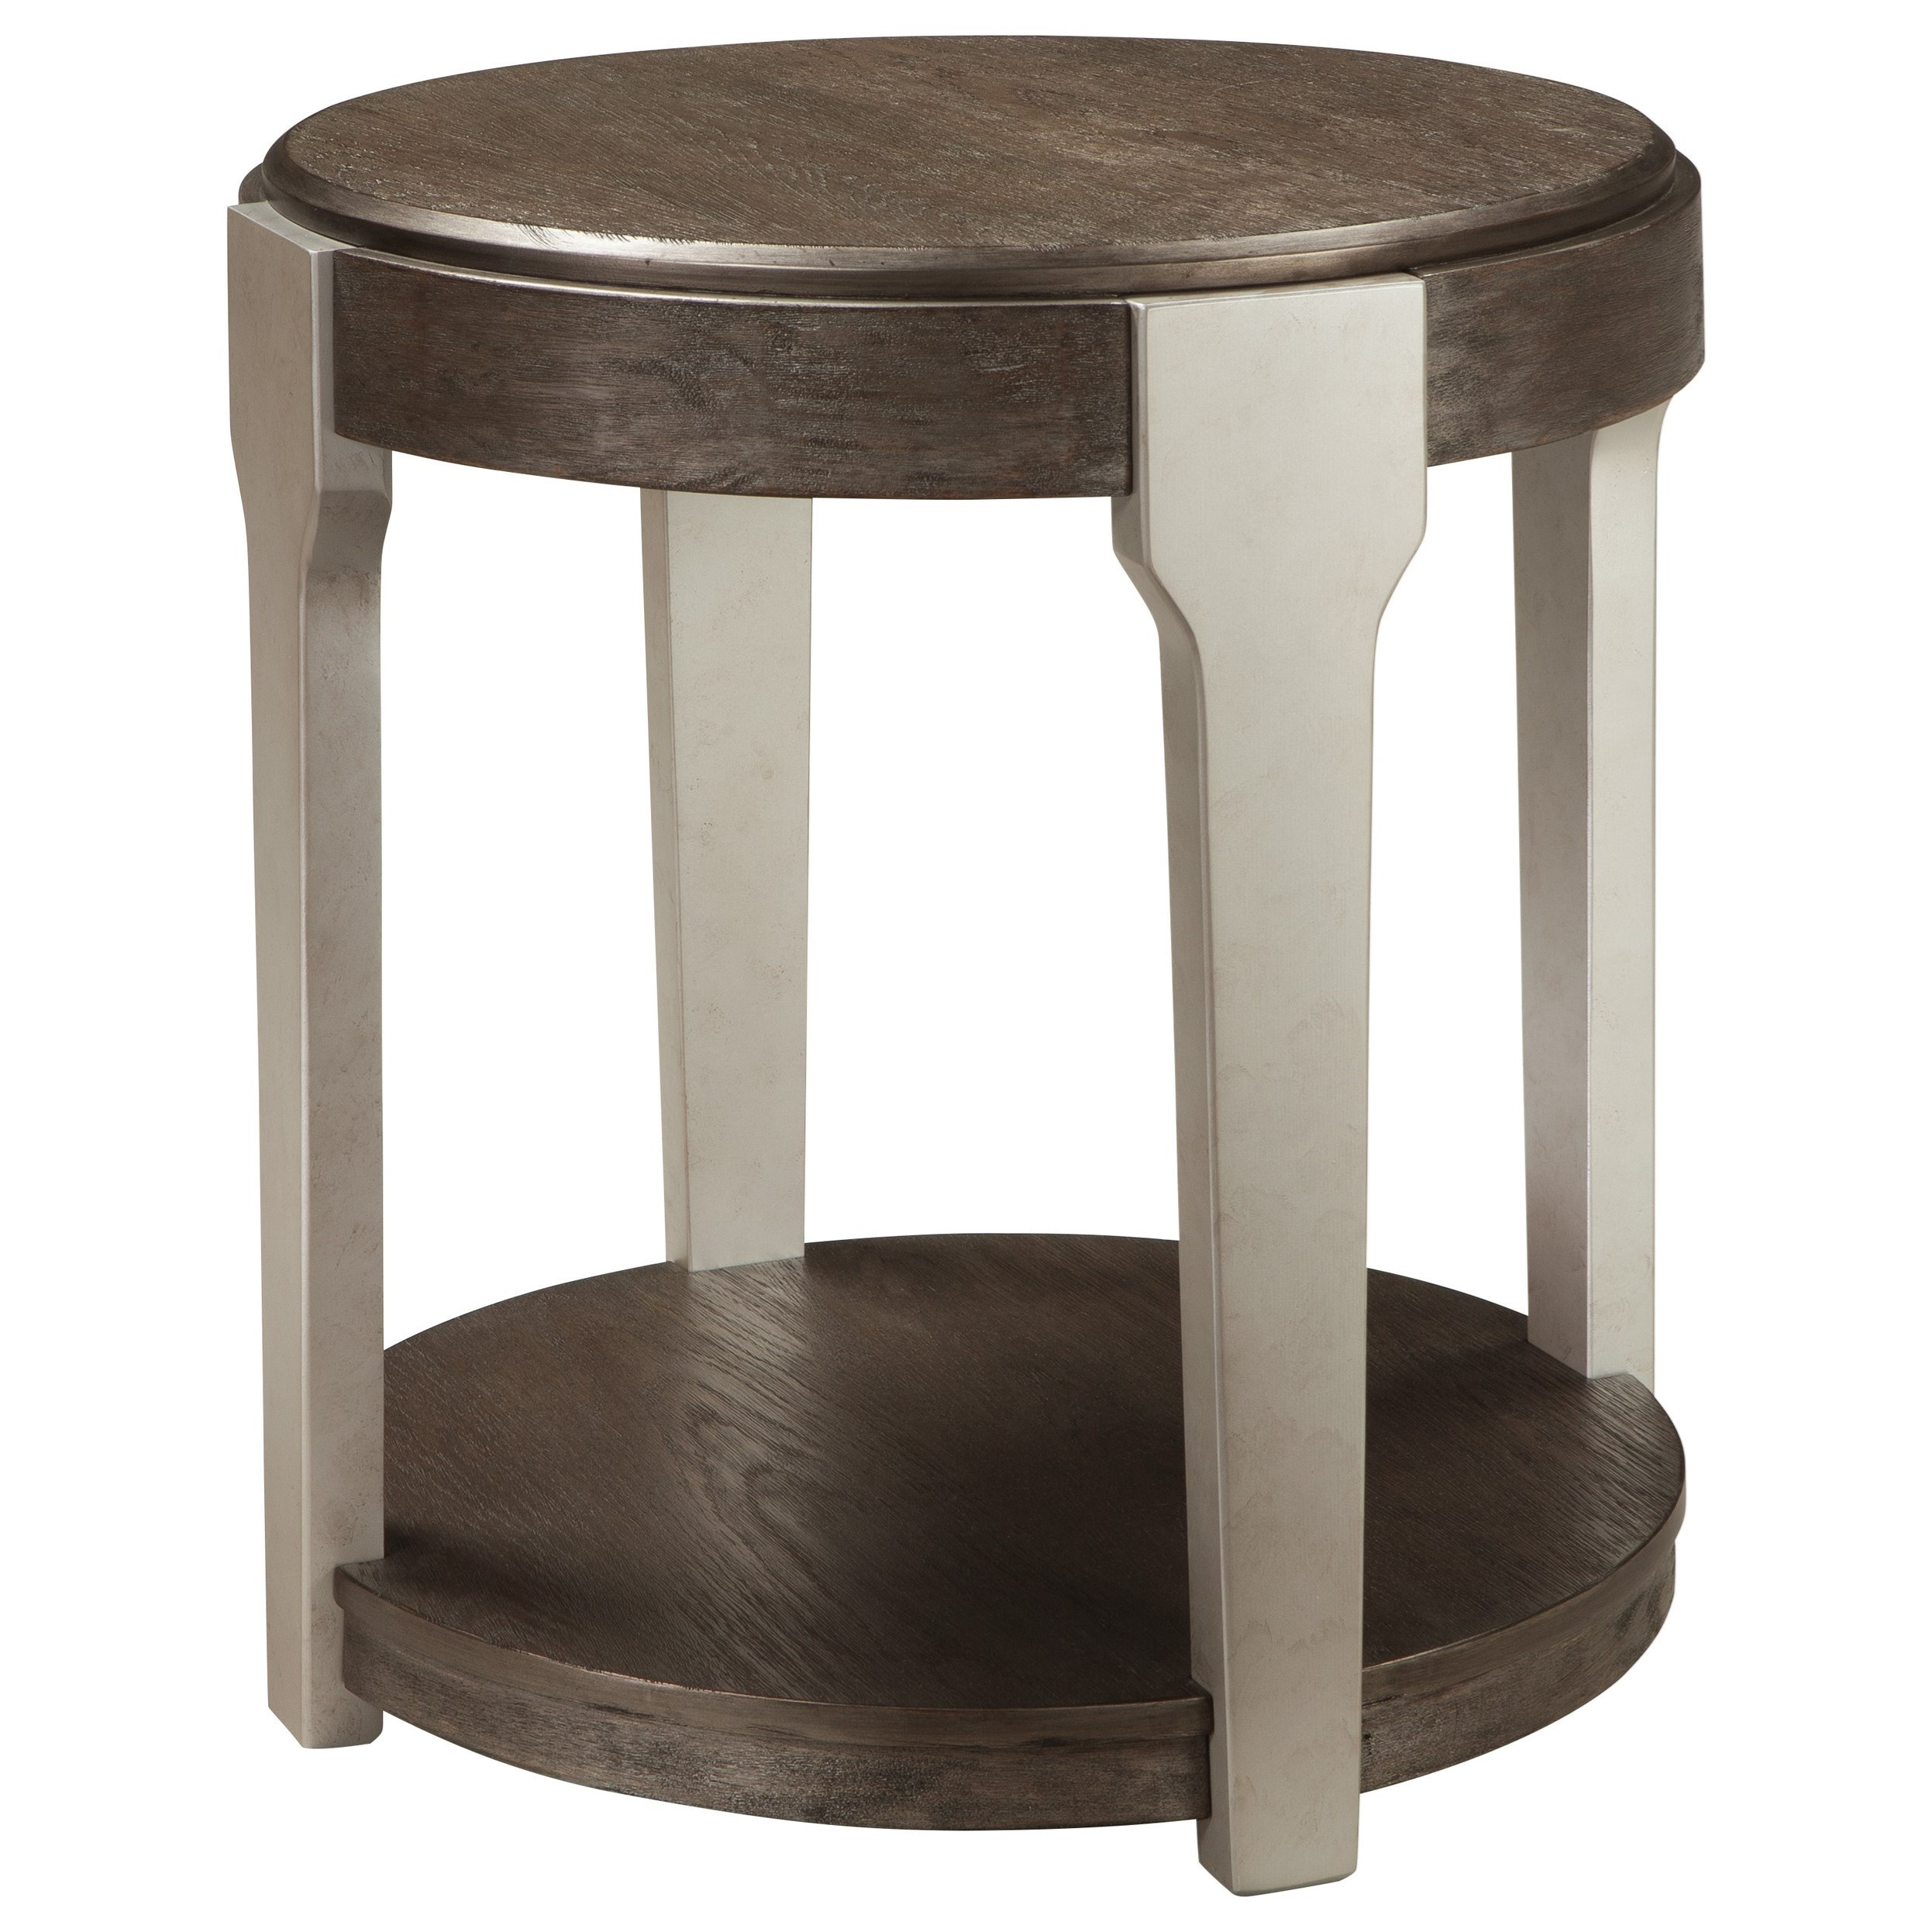 Signature Design by Ashley Brenzington Round End Table - Item Number: T453-6